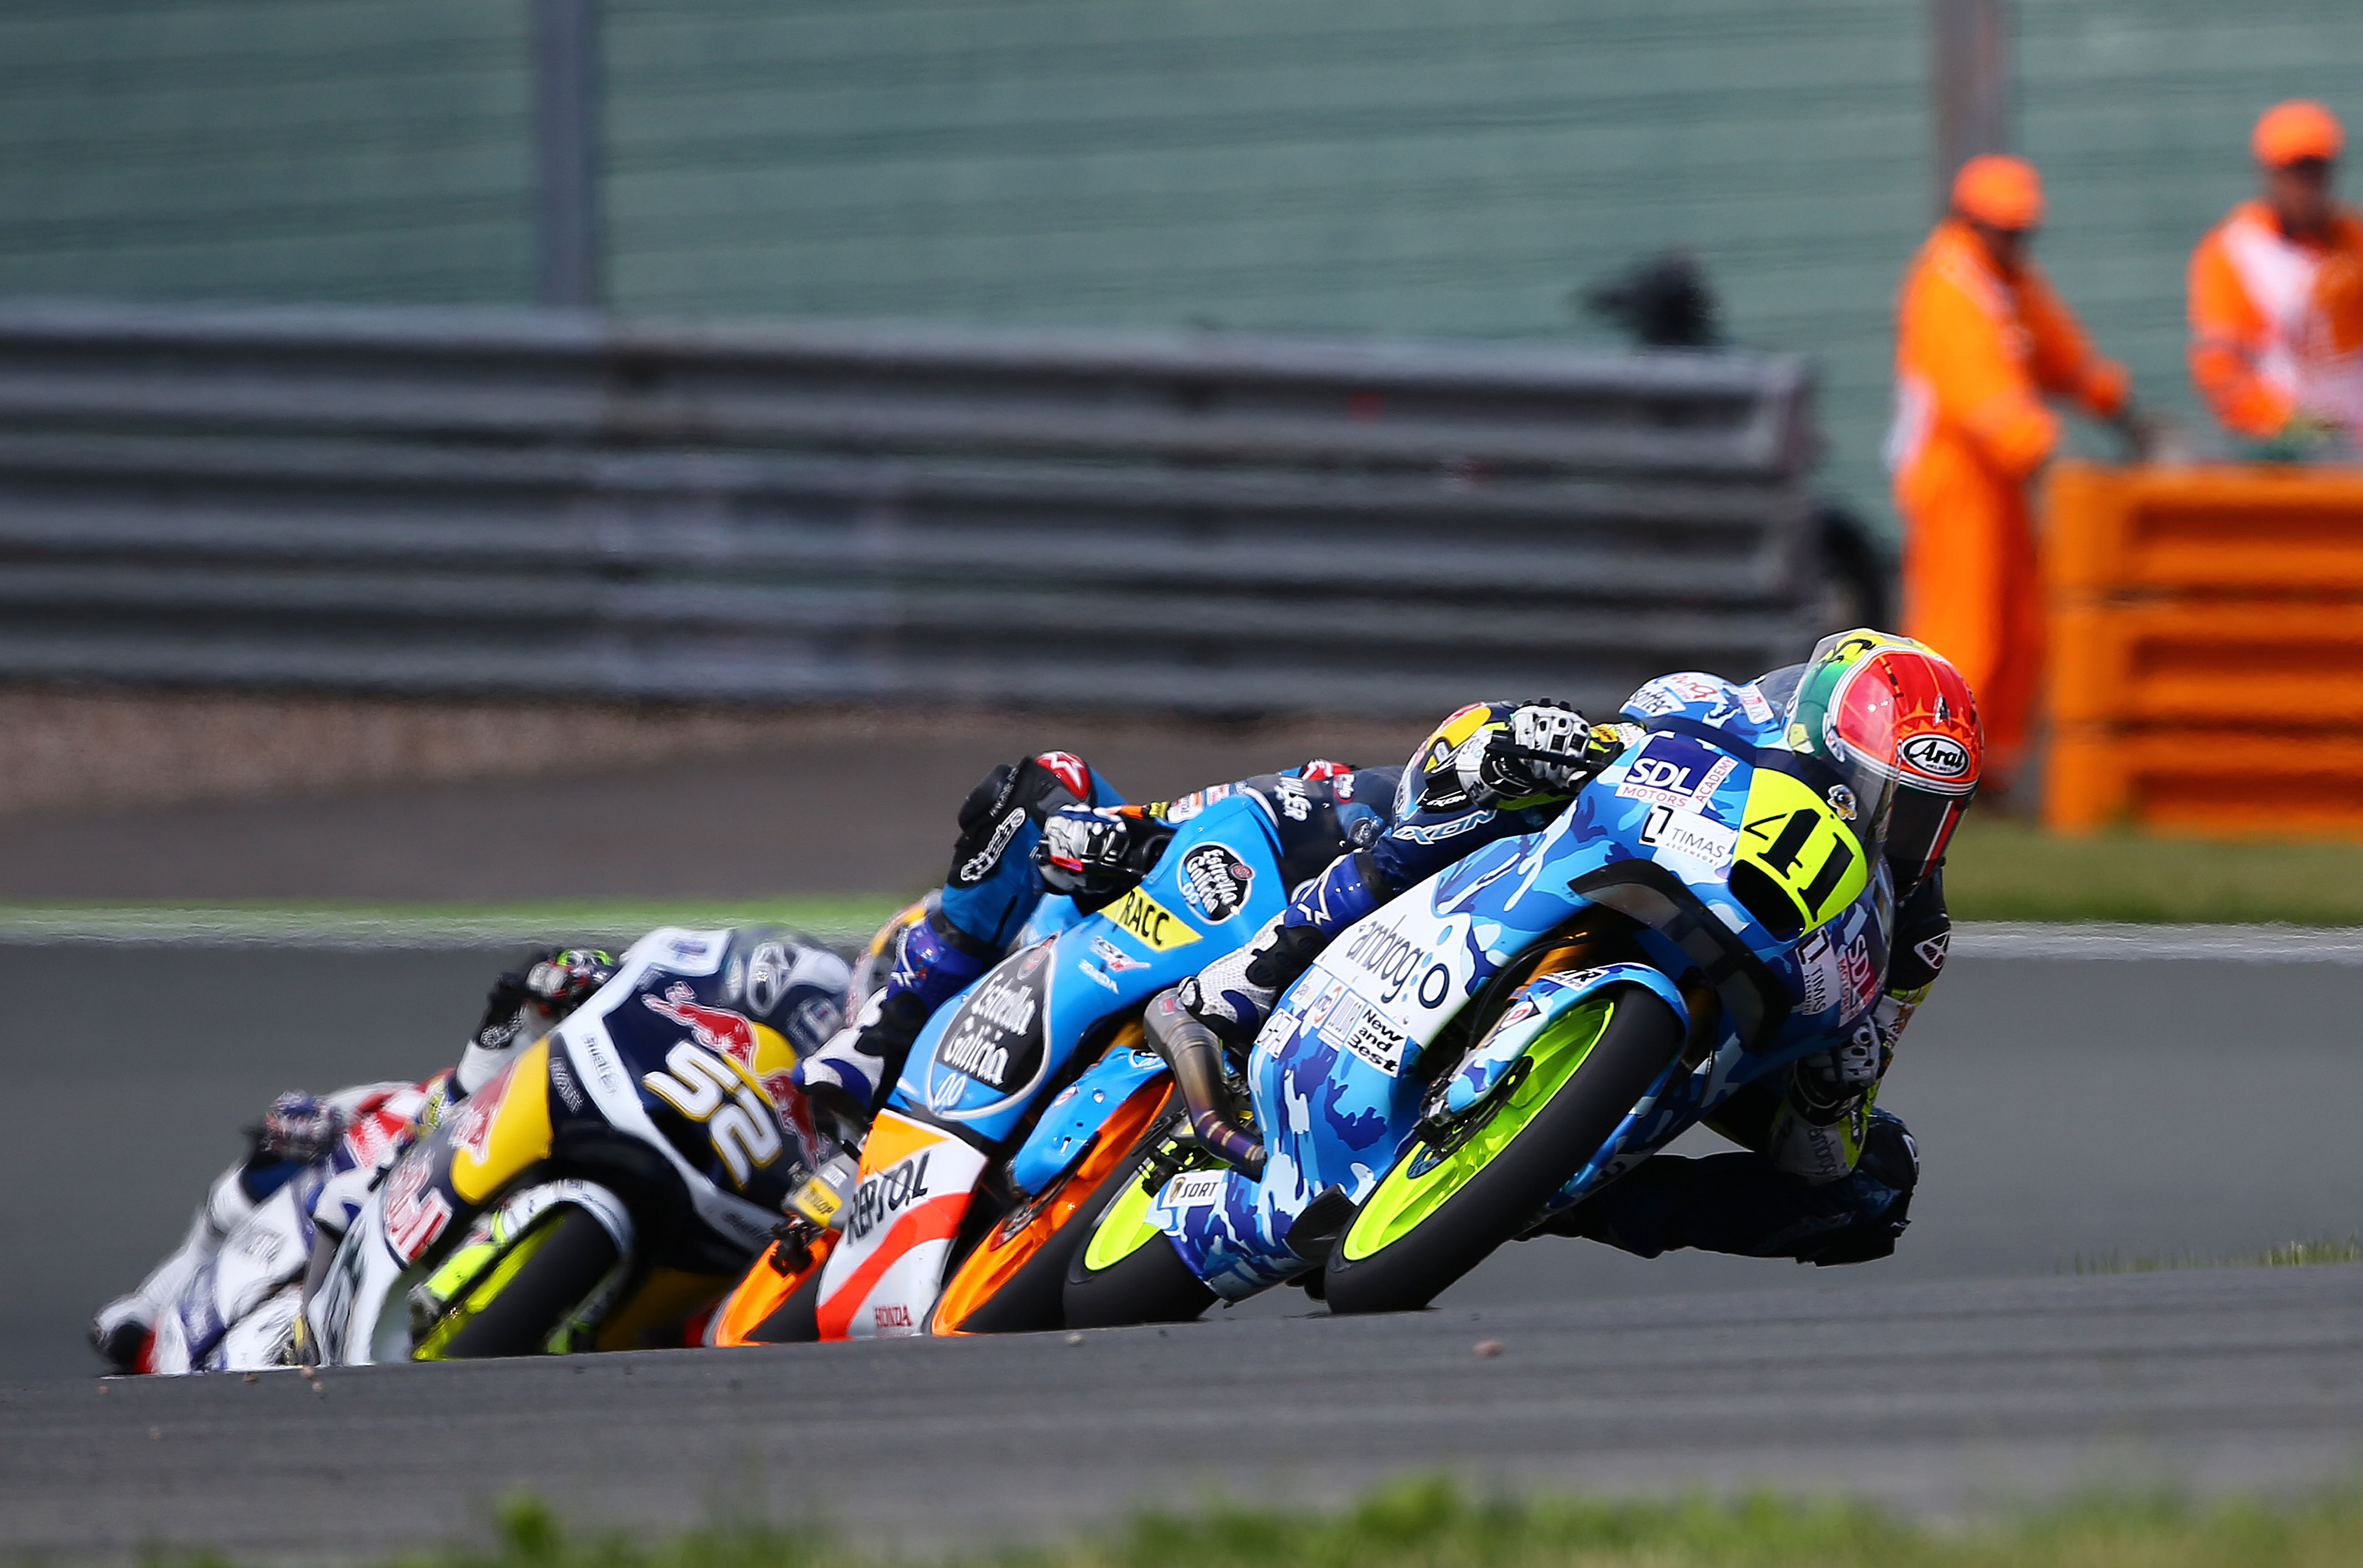 Brad-Binder-races-to-second-on-the-Mahindra-MGP3O | INDIA in F1